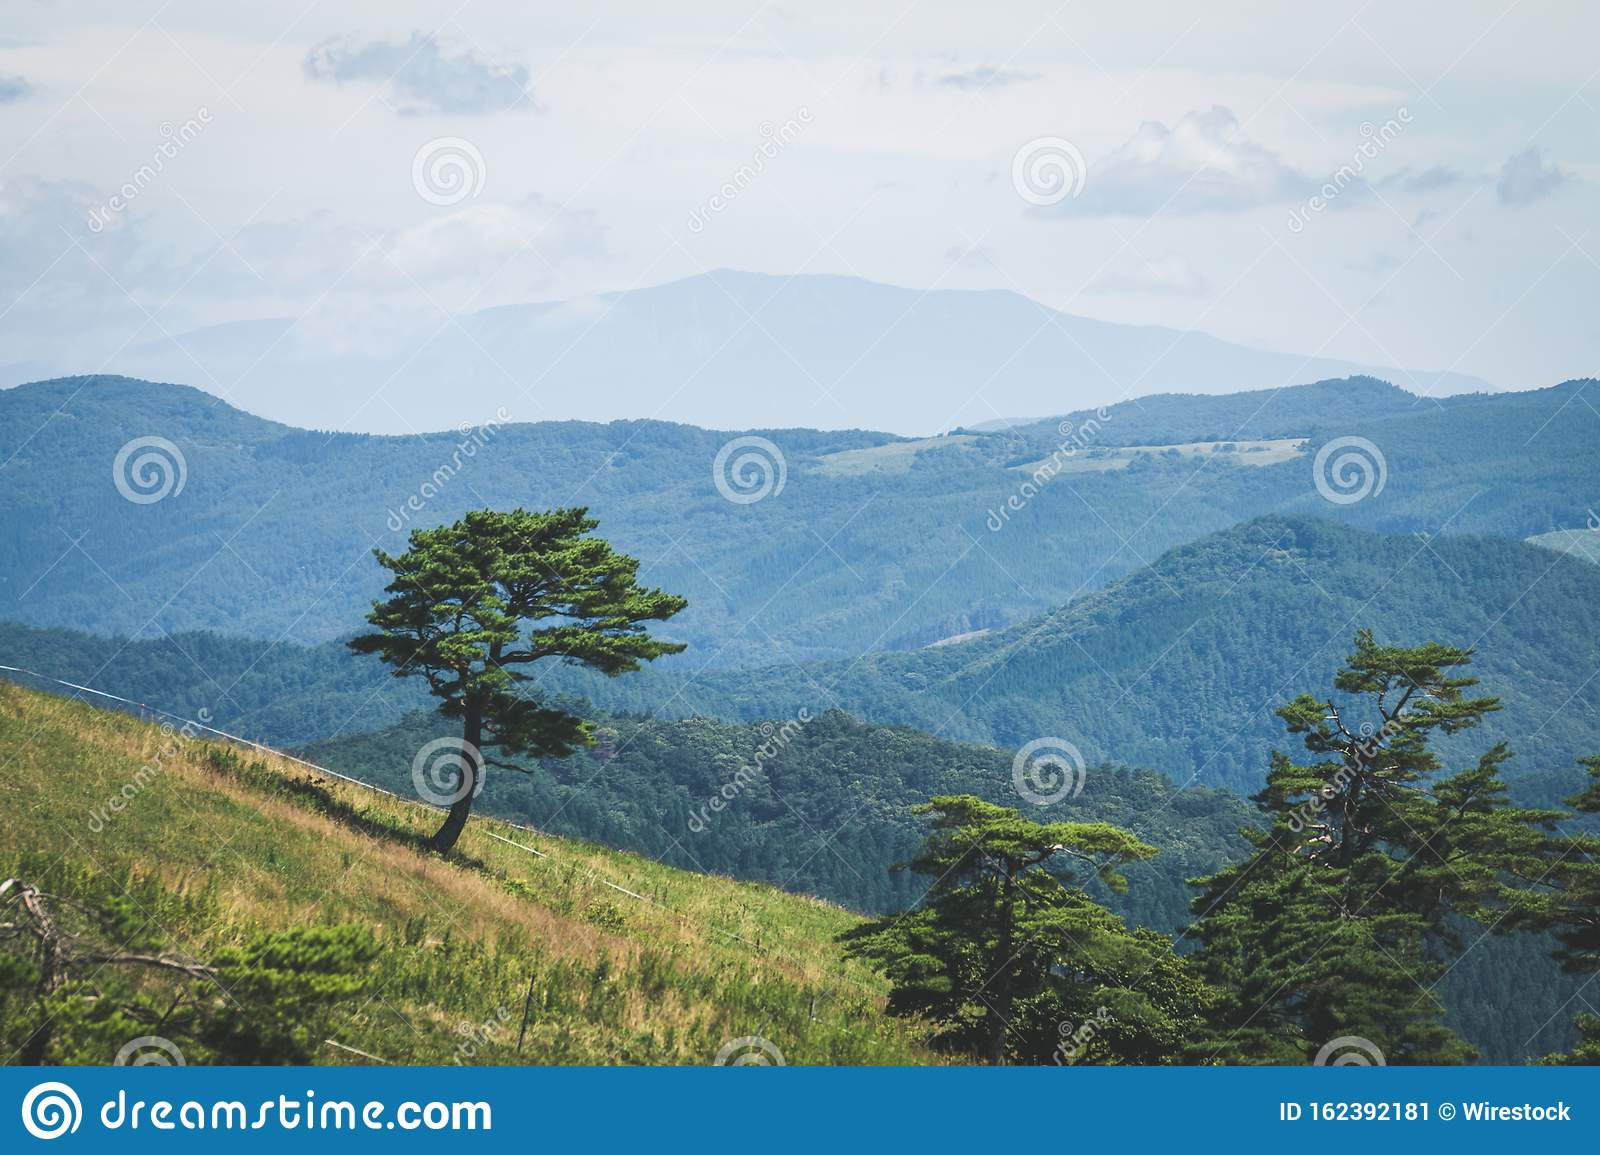 Beautiful Mountainous Scenery Of A Country Landscape Full Of Green Trees And Other Plants Stock Image Image Of Clouds Grass 162392181